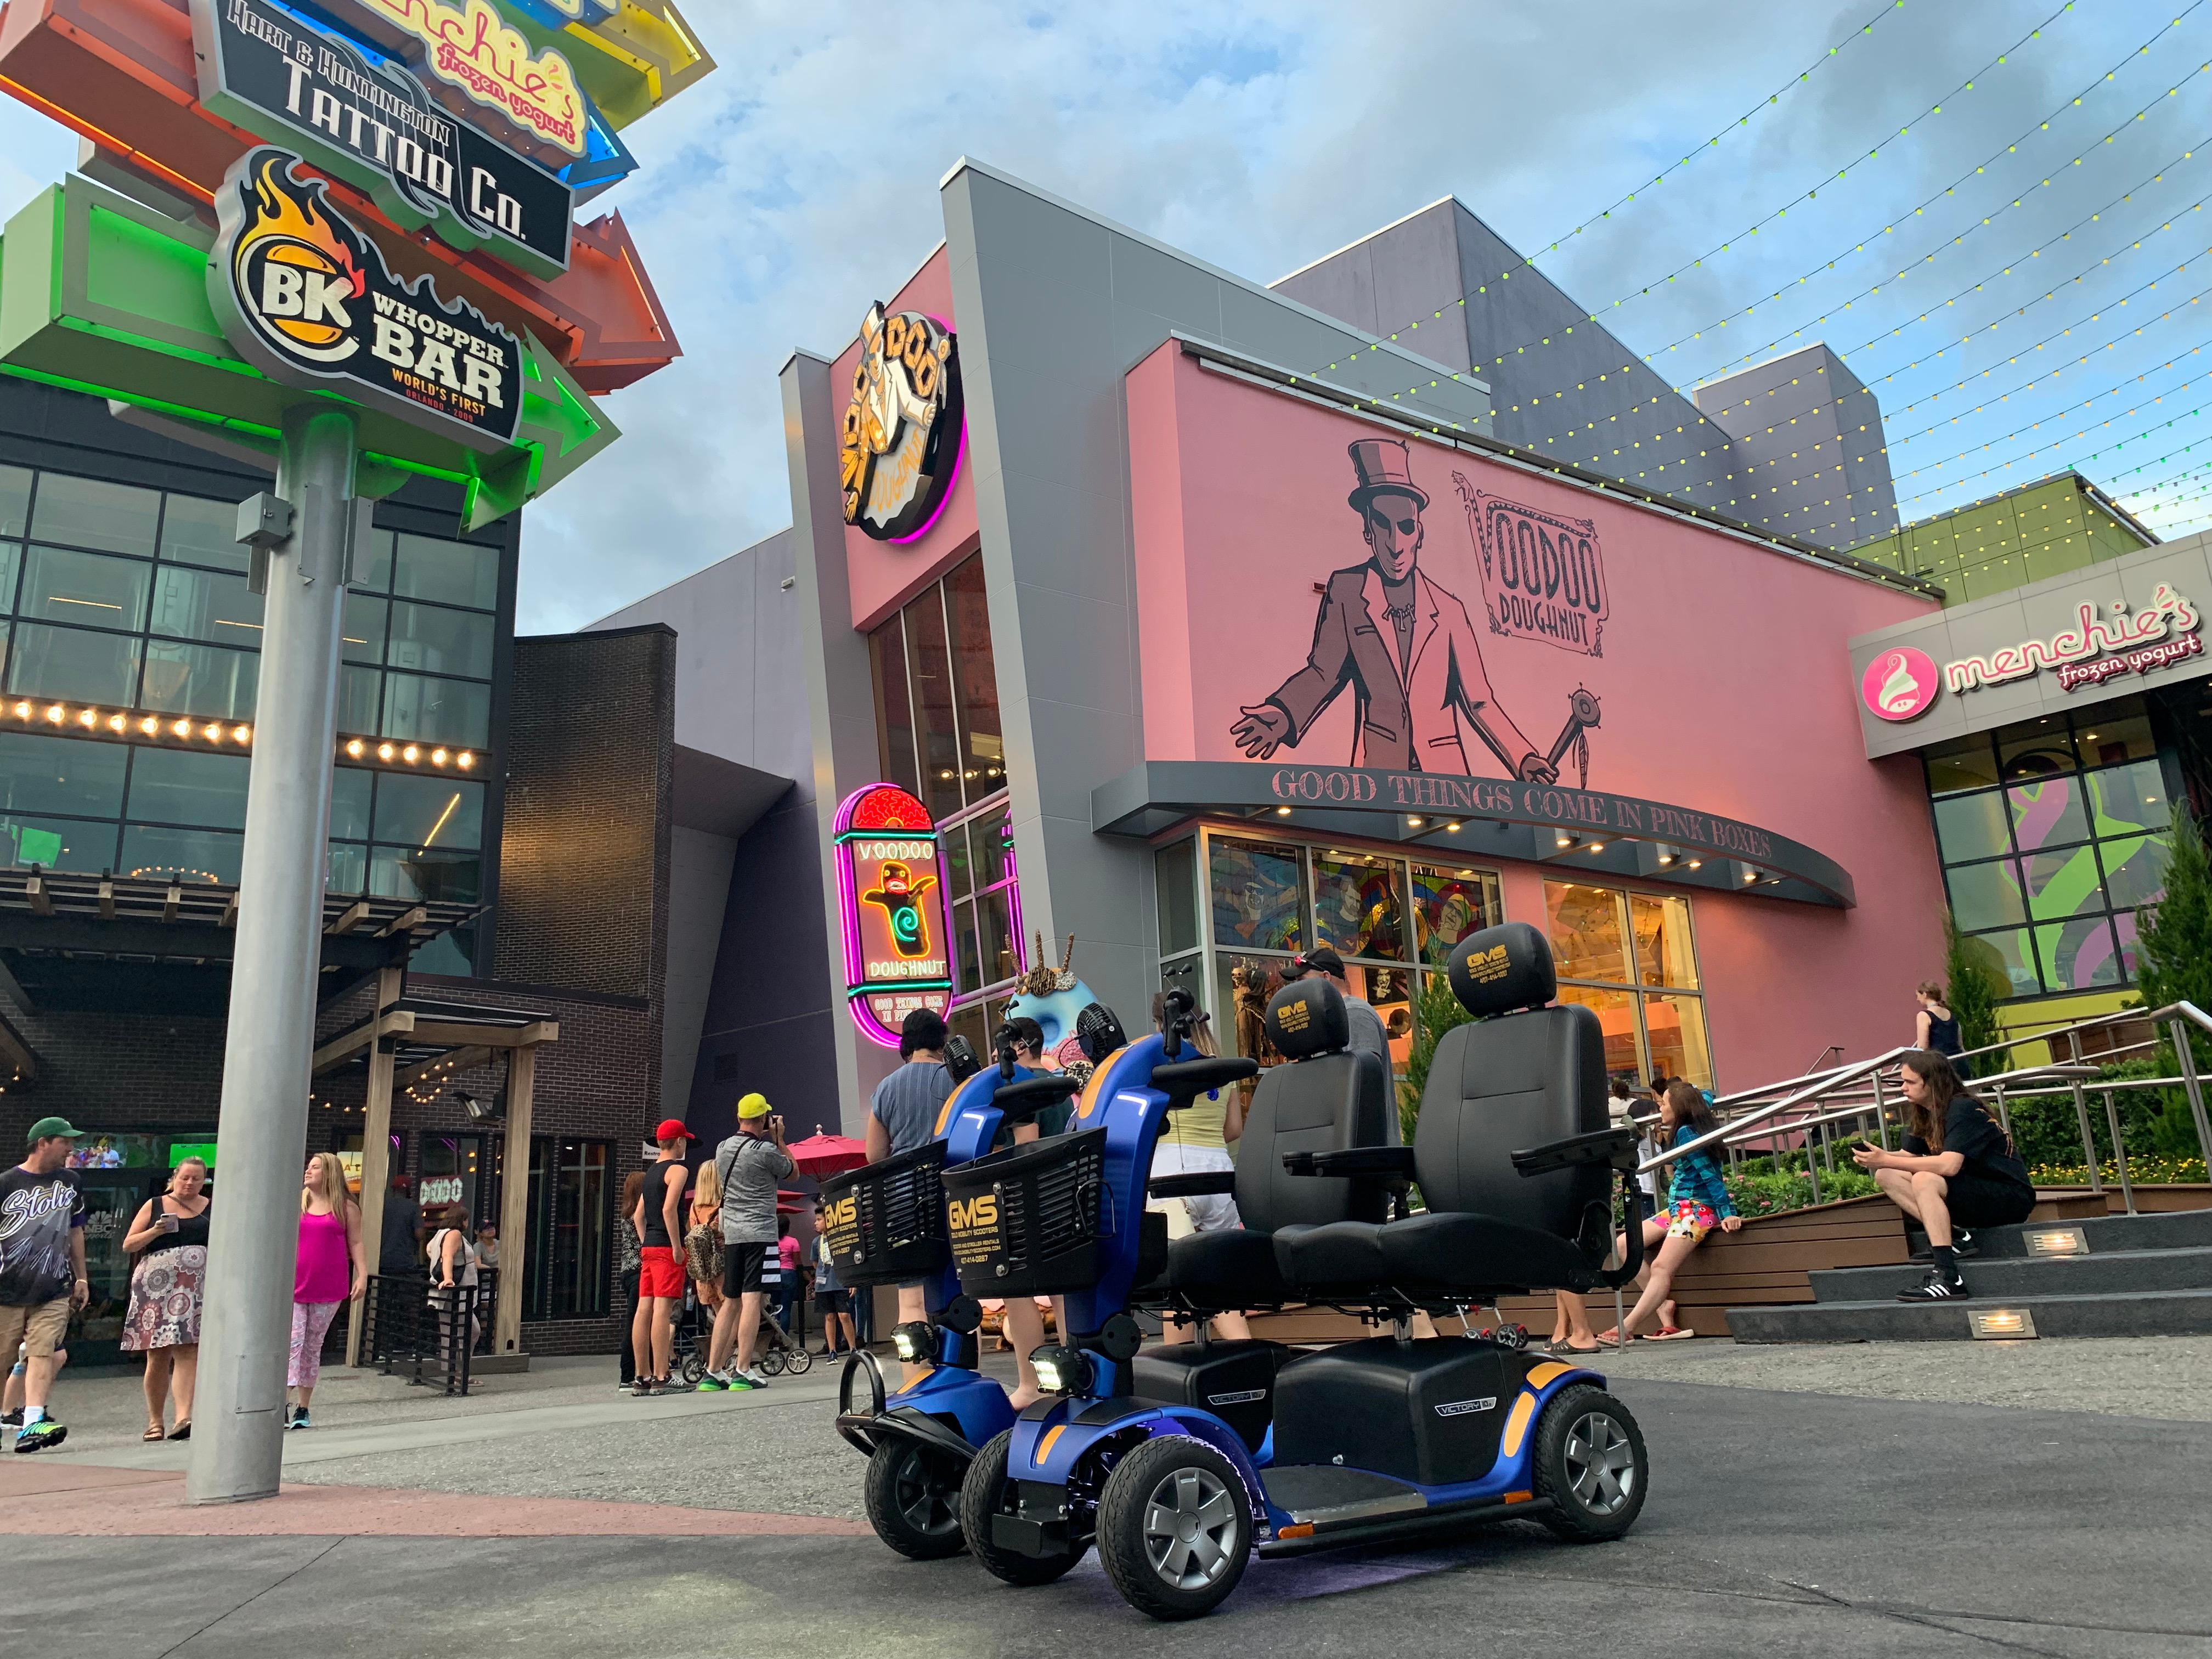 Mobility scooter rental Universal Orlando Florida  by Gold Mobility Scooters. We sell and rent top of the line Pride Mobility Scooters in our rent a scooter line. Theme Parks and Orlando Florida Area scooter rentals. Best rental Prices, Premium brand new scooters for rent, Free Delivery and Pickup, Free Damage Waver, Free Accessories, and Custom upgrades. 5 star rated scooter rental company. Scooter Rental info at https://goldmobilityscooters.com or Call us at 407-414-0287